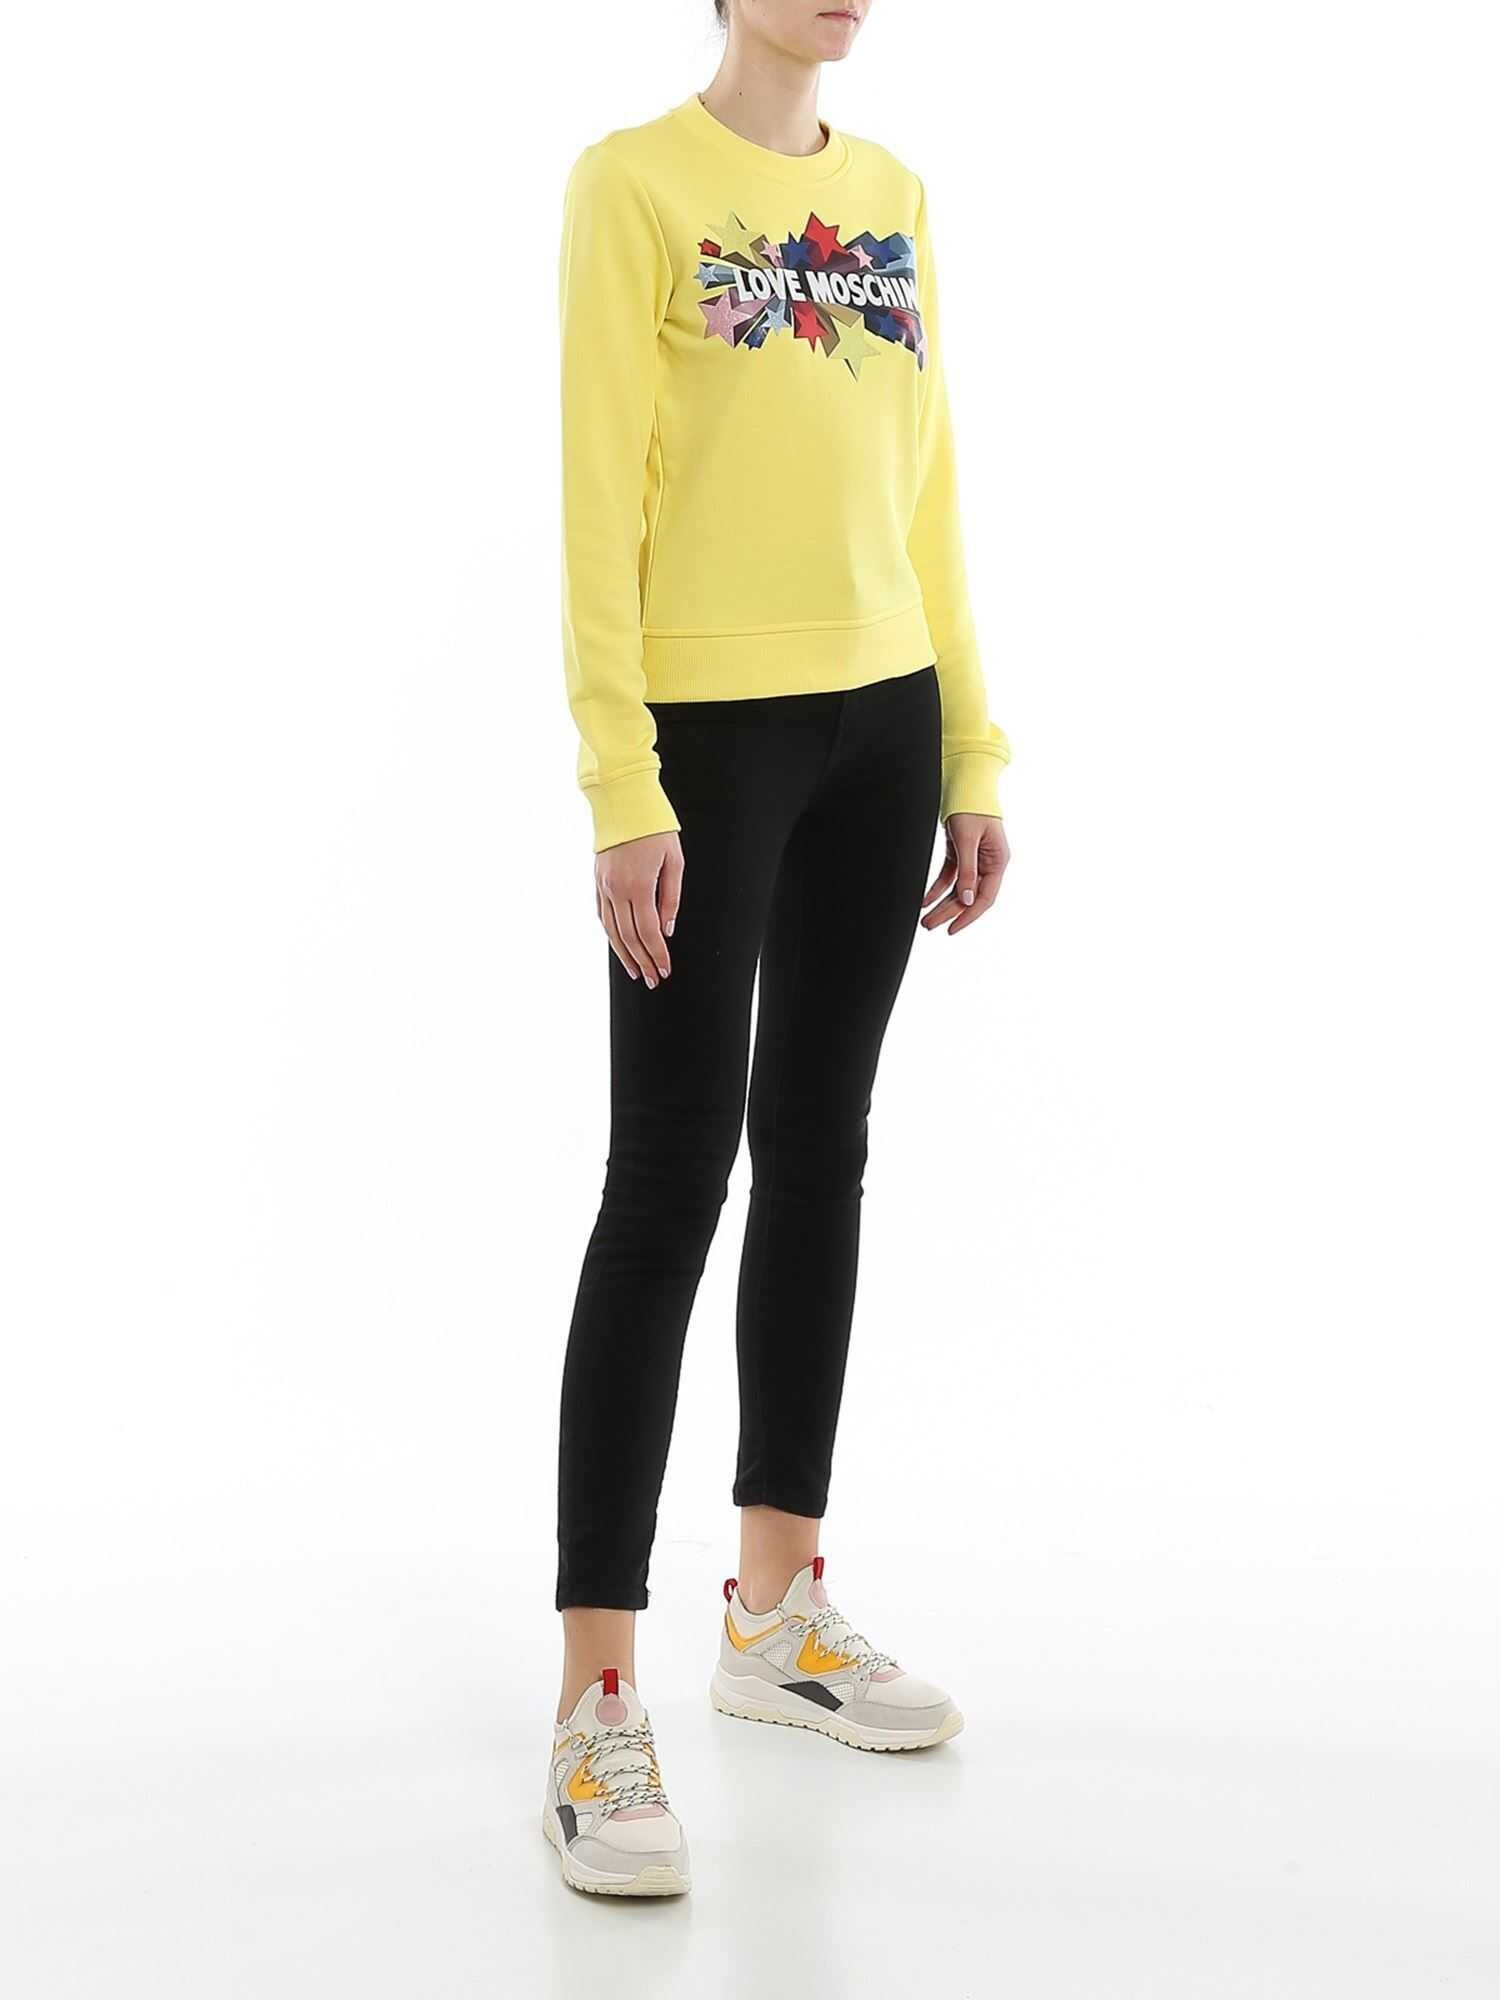 LOVE Moschino Logo Embellished Crew Neck Sweatshirt Yellow